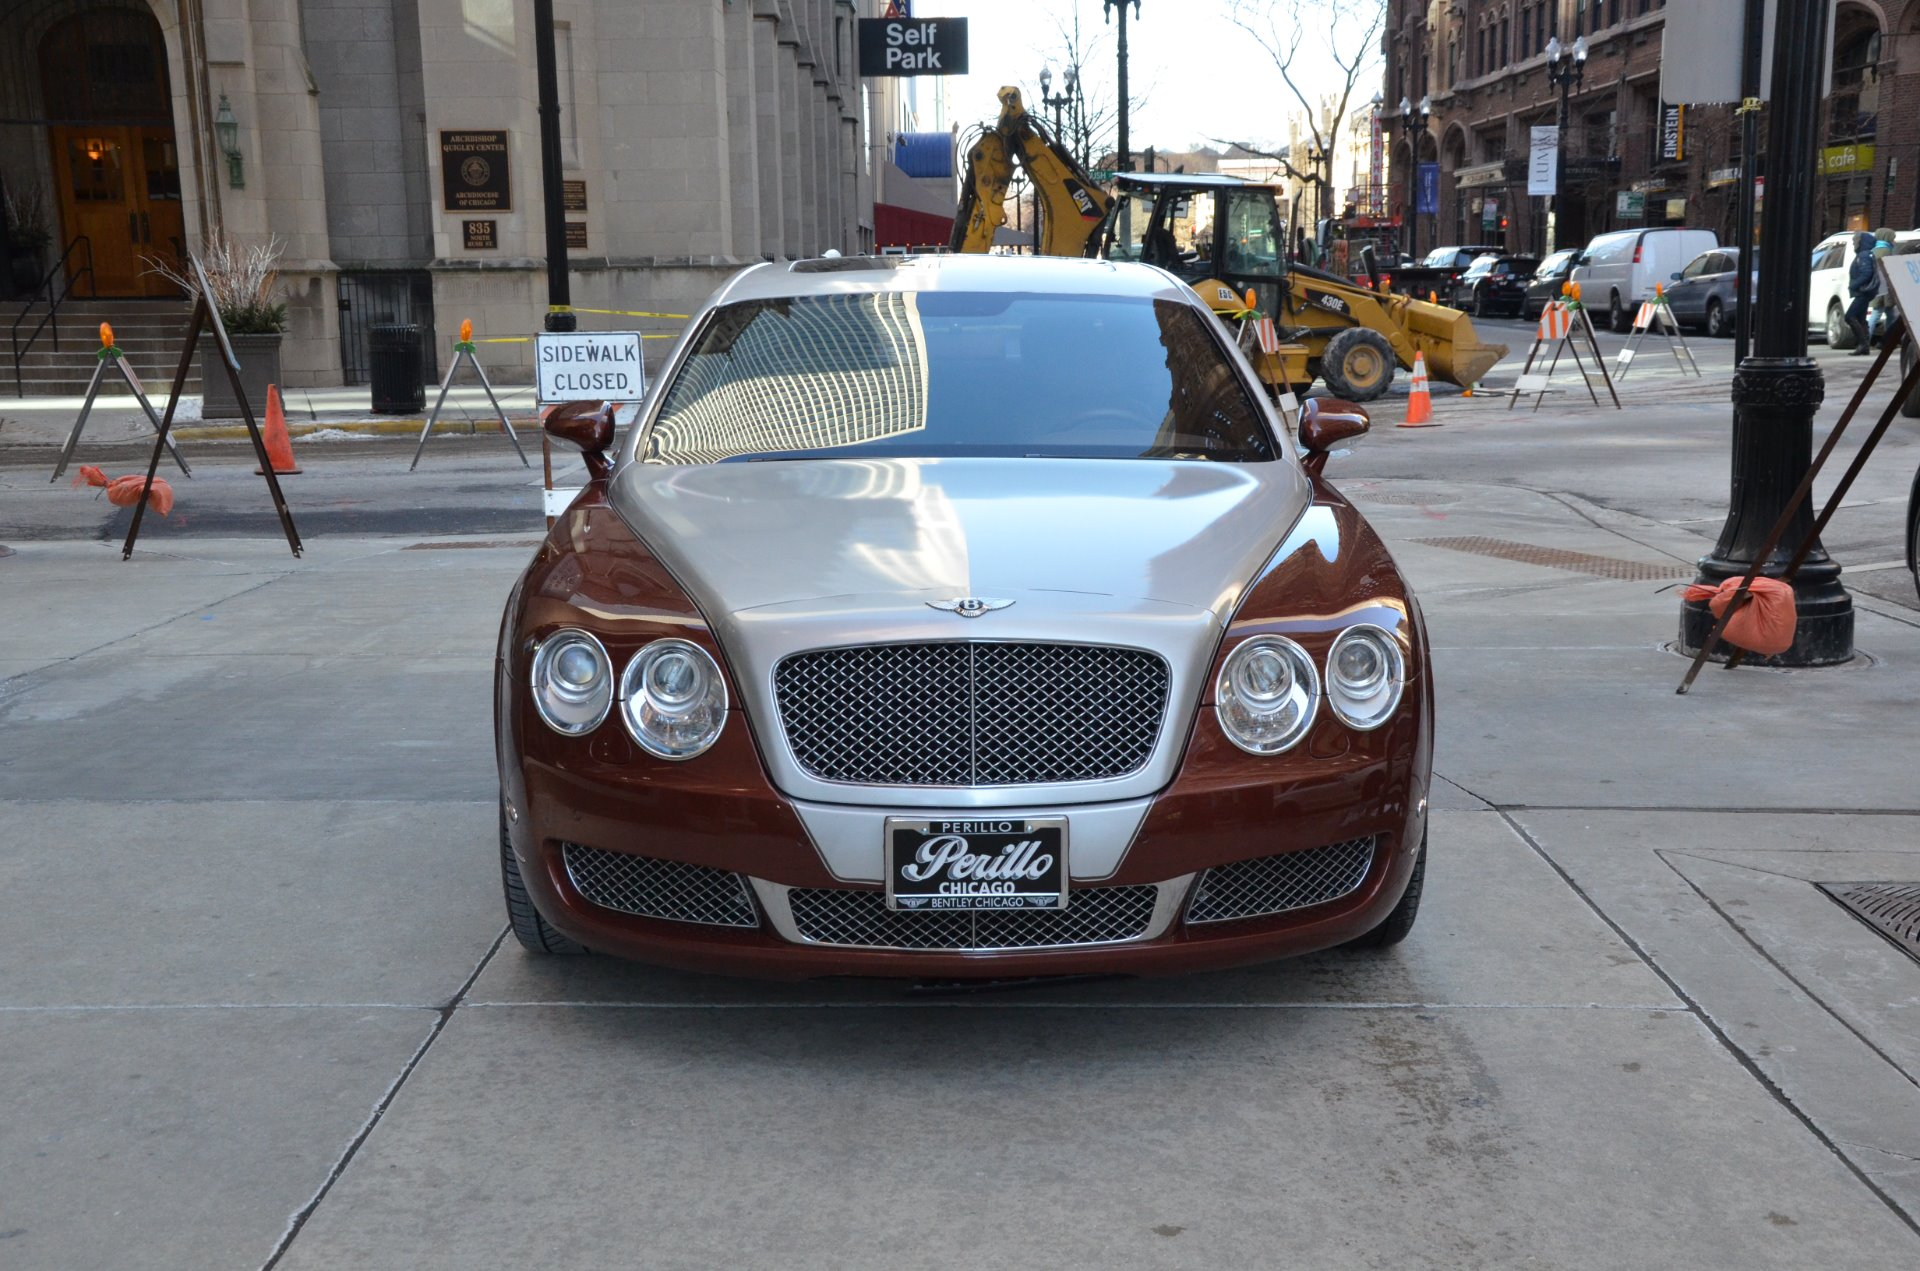 2007 bentley continental flying spur stock r198aa for sale near chicago il il bentley dealer. Black Bedroom Furniture Sets. Home Design Ideas